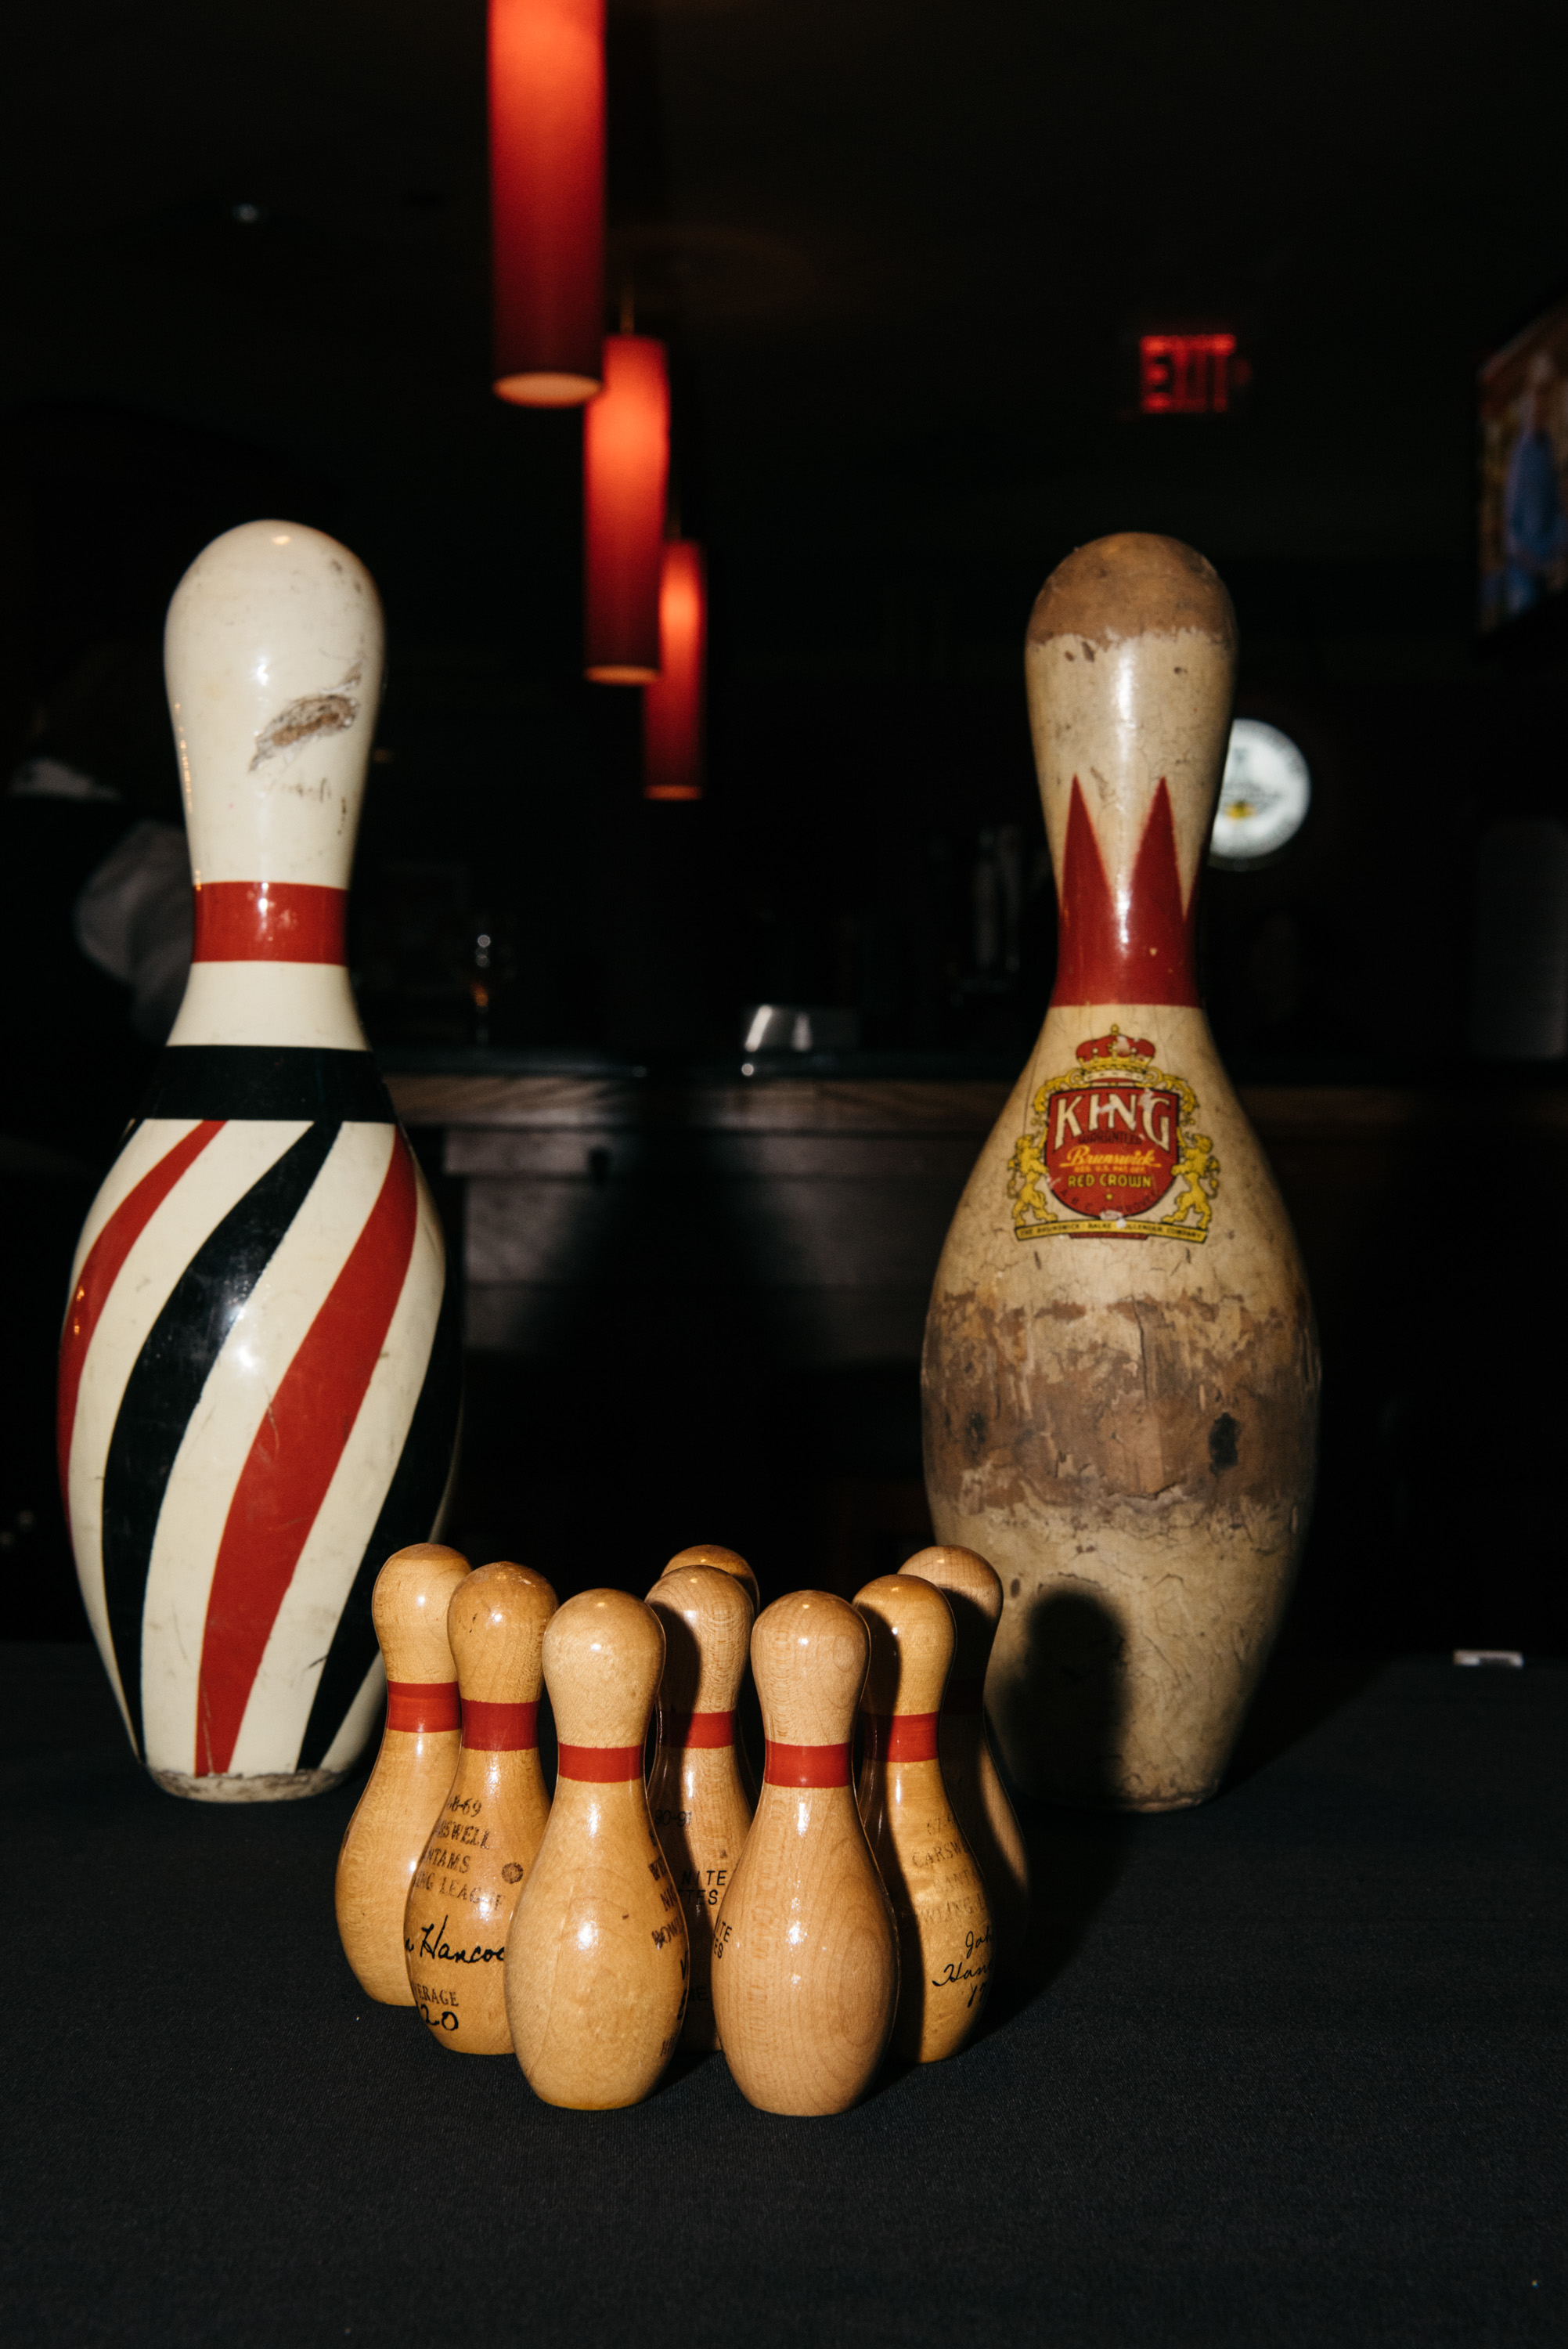 Vintage Bowling Pins were rewarded to winners